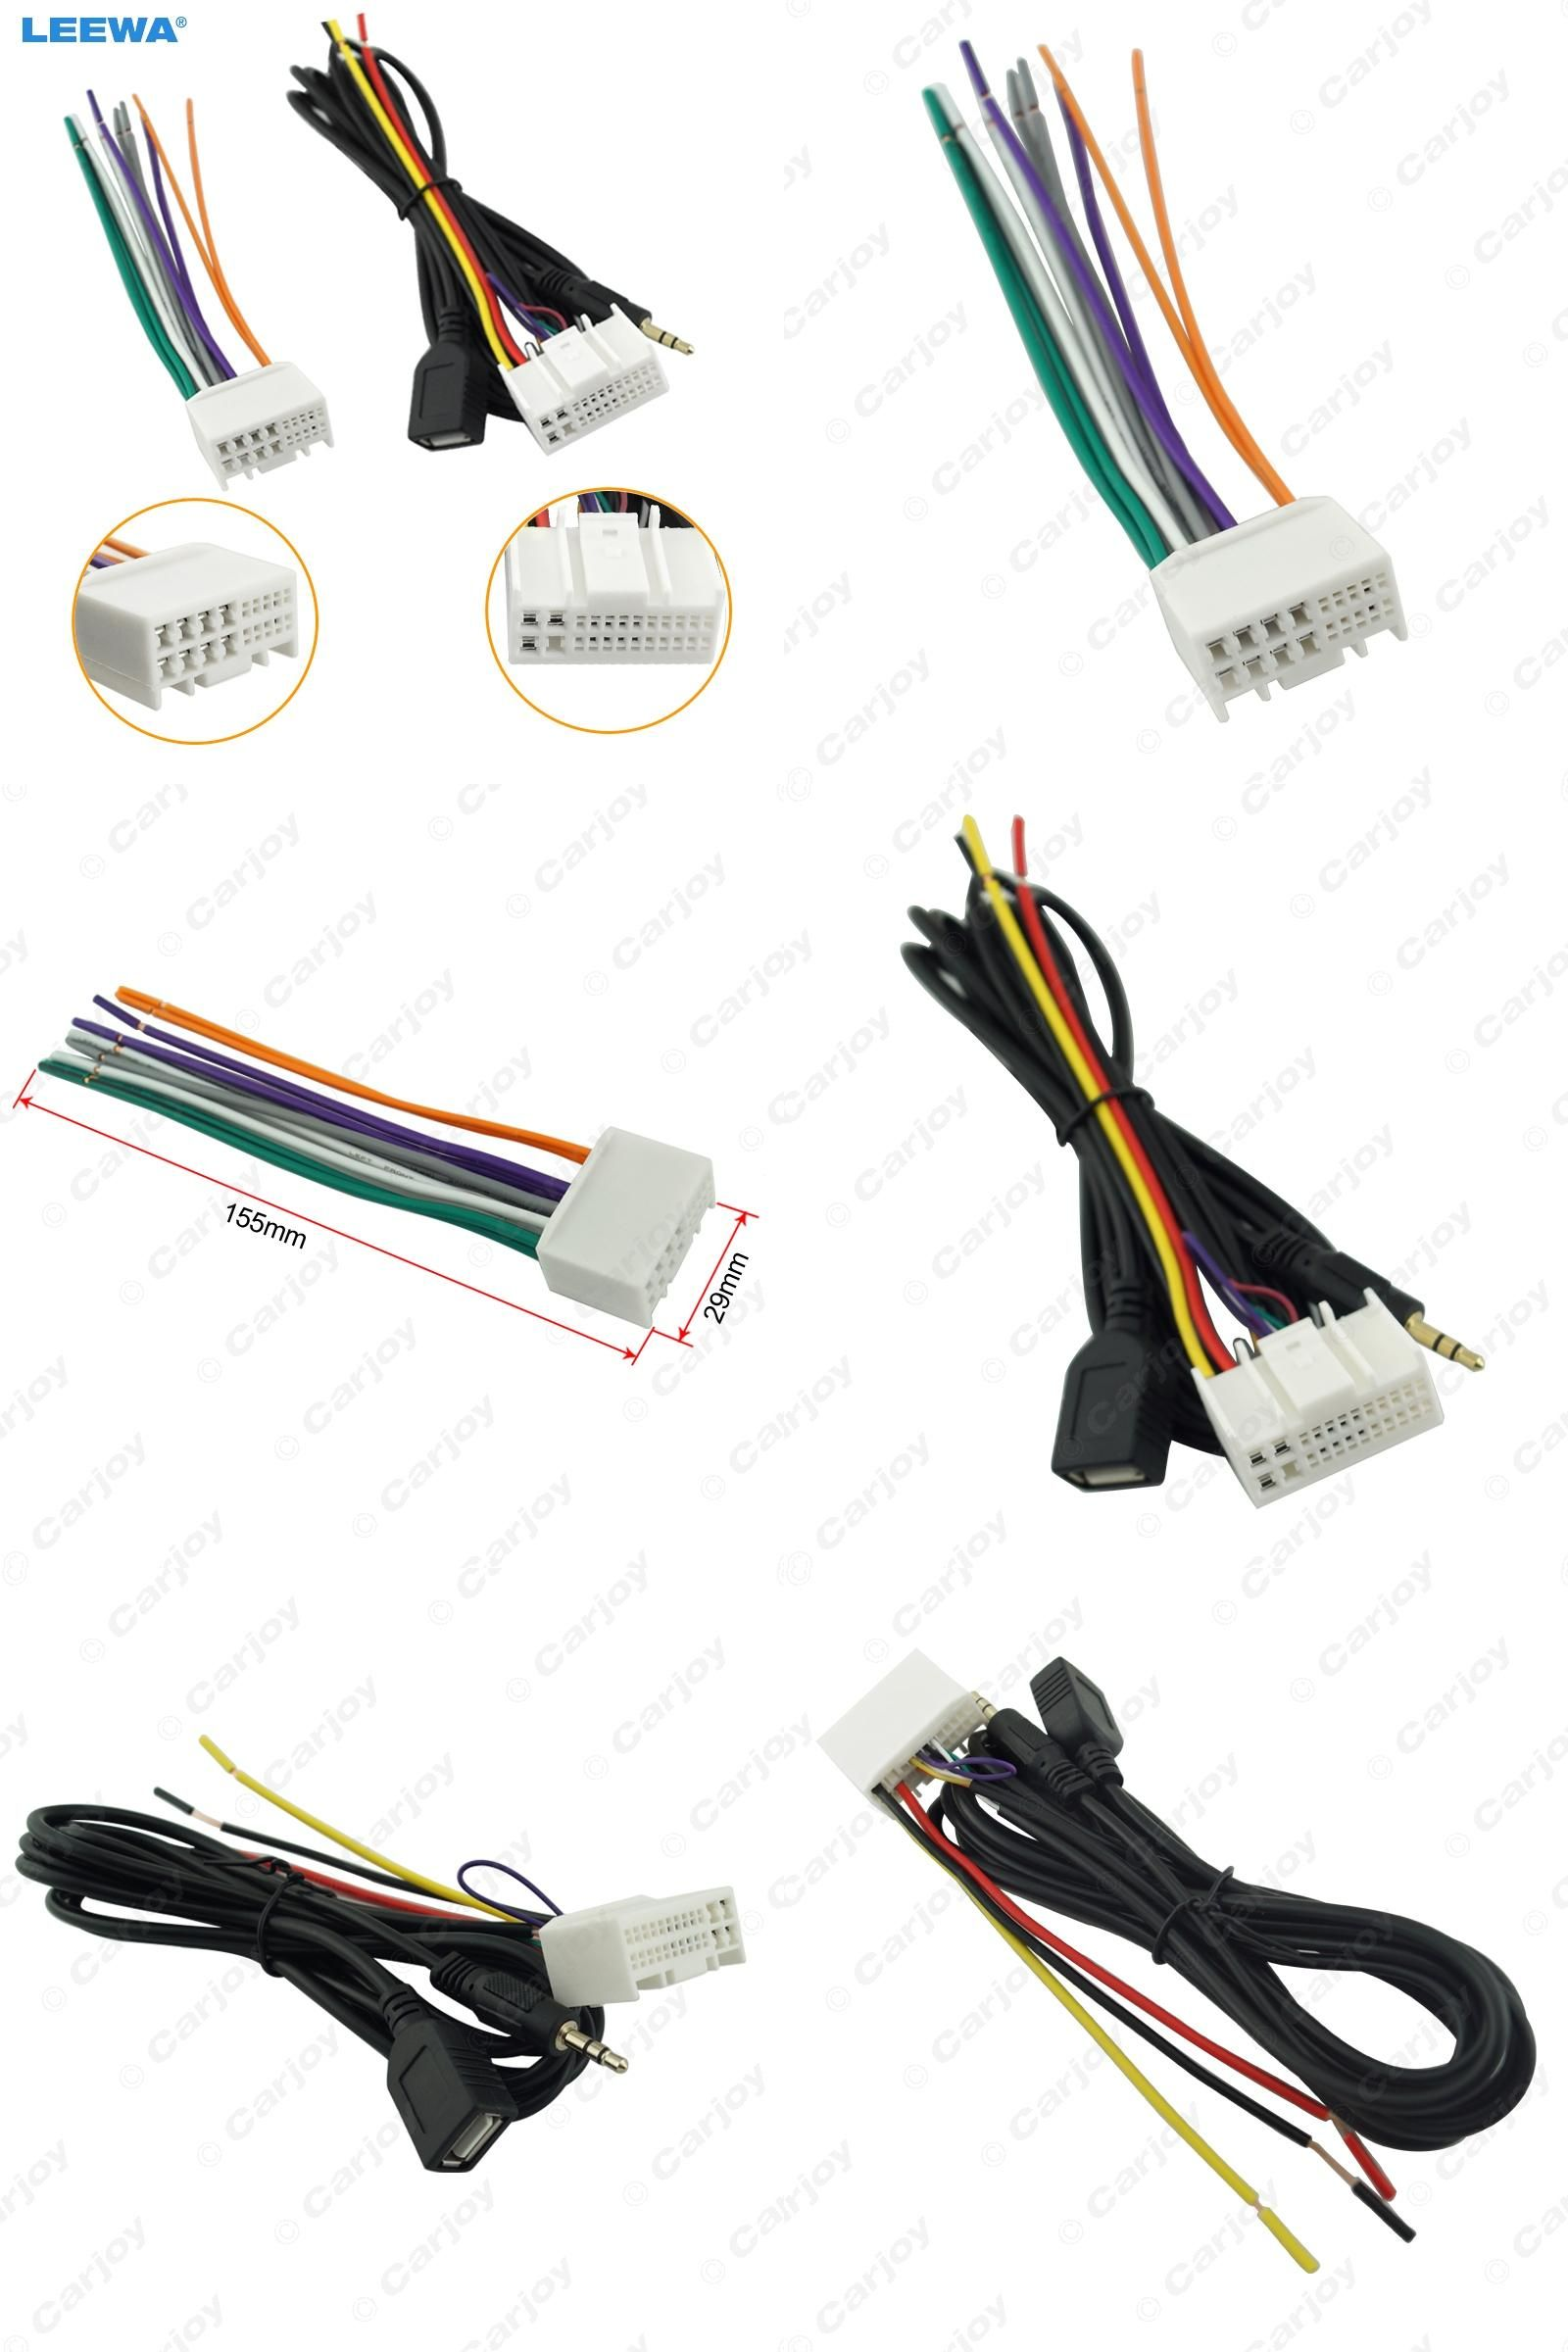 65bba15fb3a8d9bc4f1b698bf8827601 visit to buy] car audio cd stereo wiring harness adapter with usb best buy stereo wiring harness at readyjetset.co